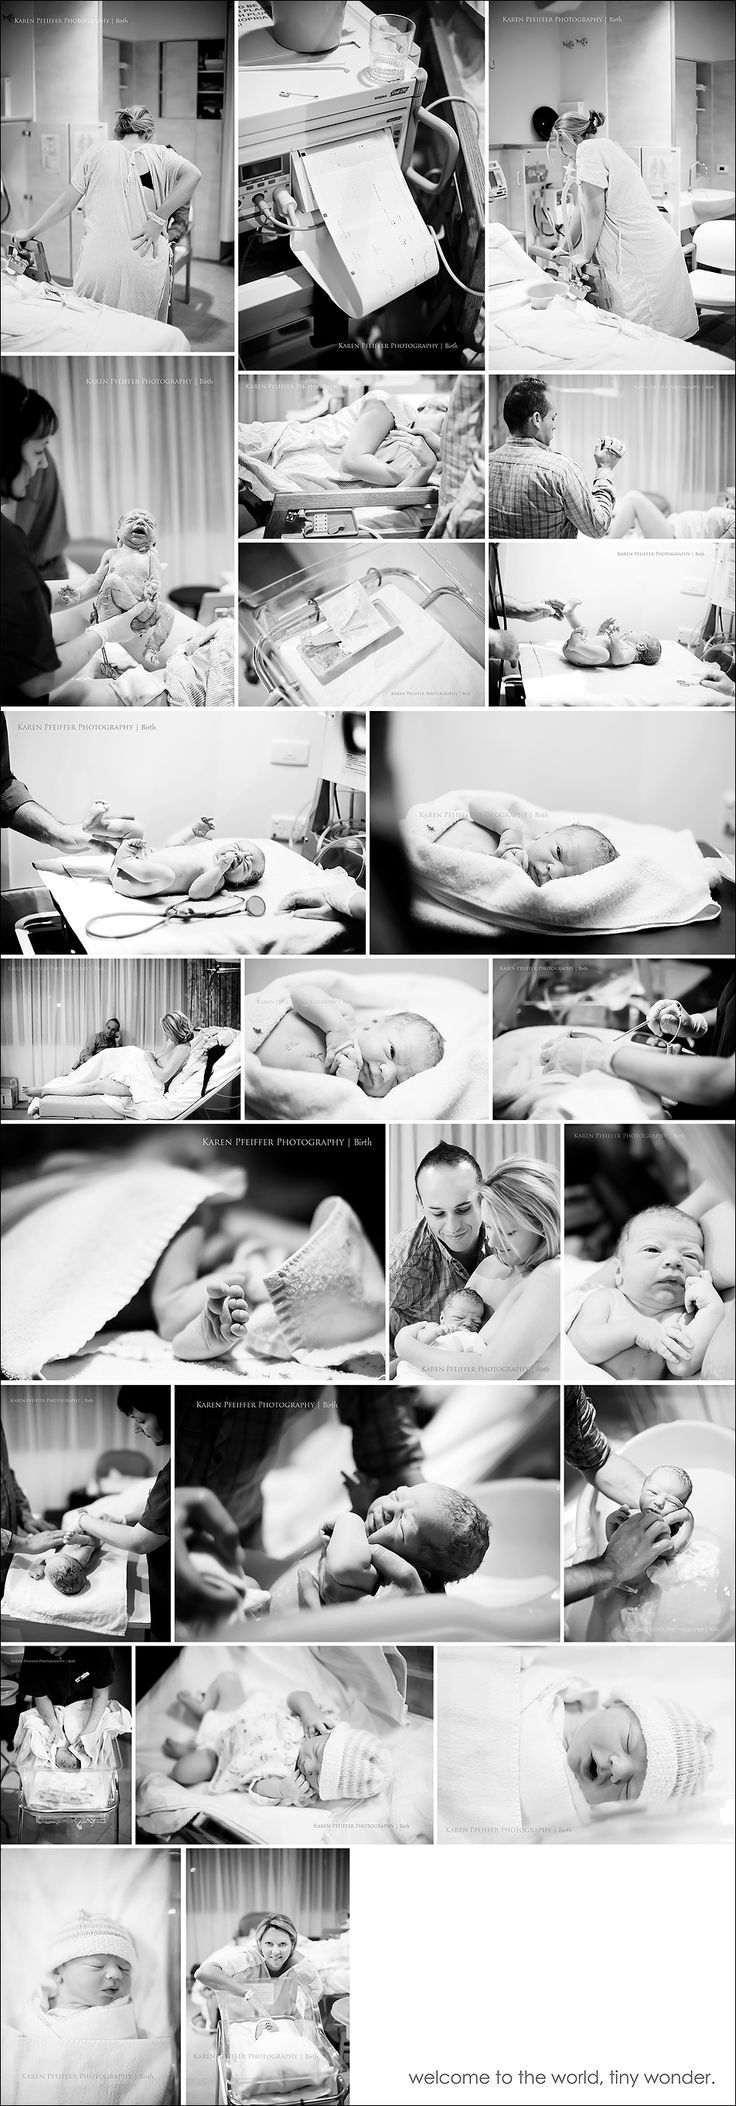 i wish i could take pics of my newborn like this lol i guess i will be a little preoccupied..